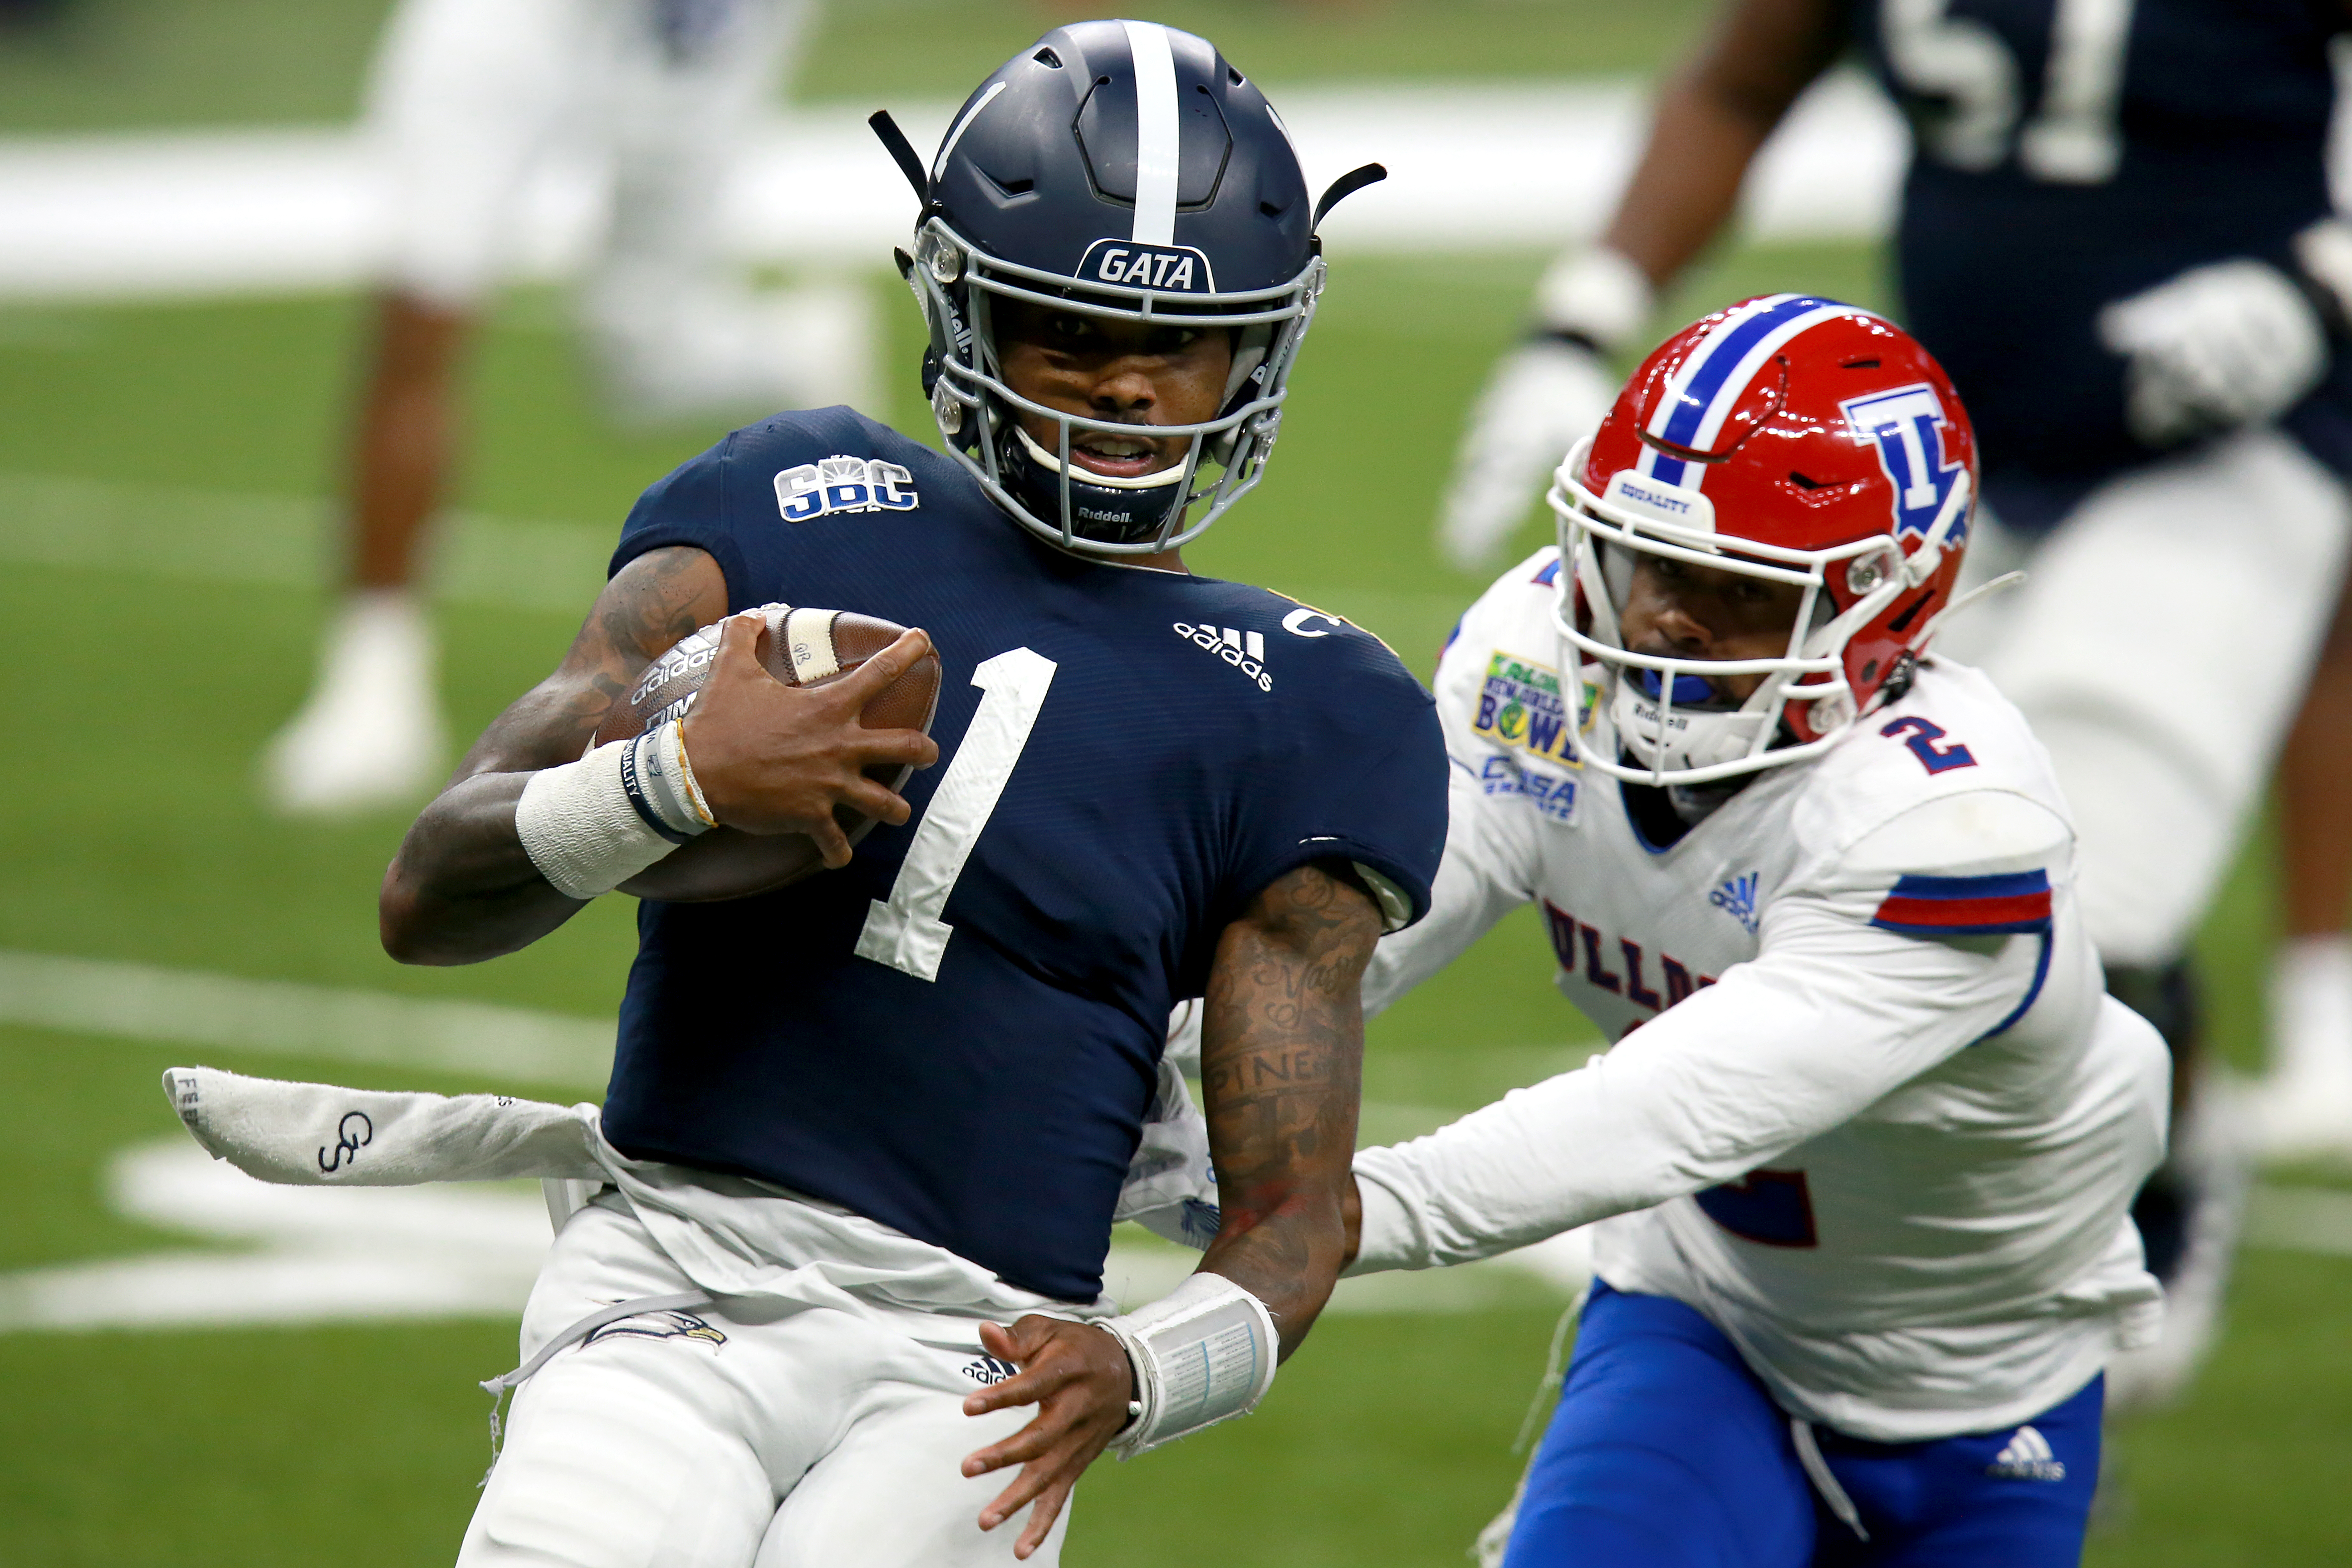 R&L Carriers New Orleans Bowl - Louisiana Tech v Georgia Southern